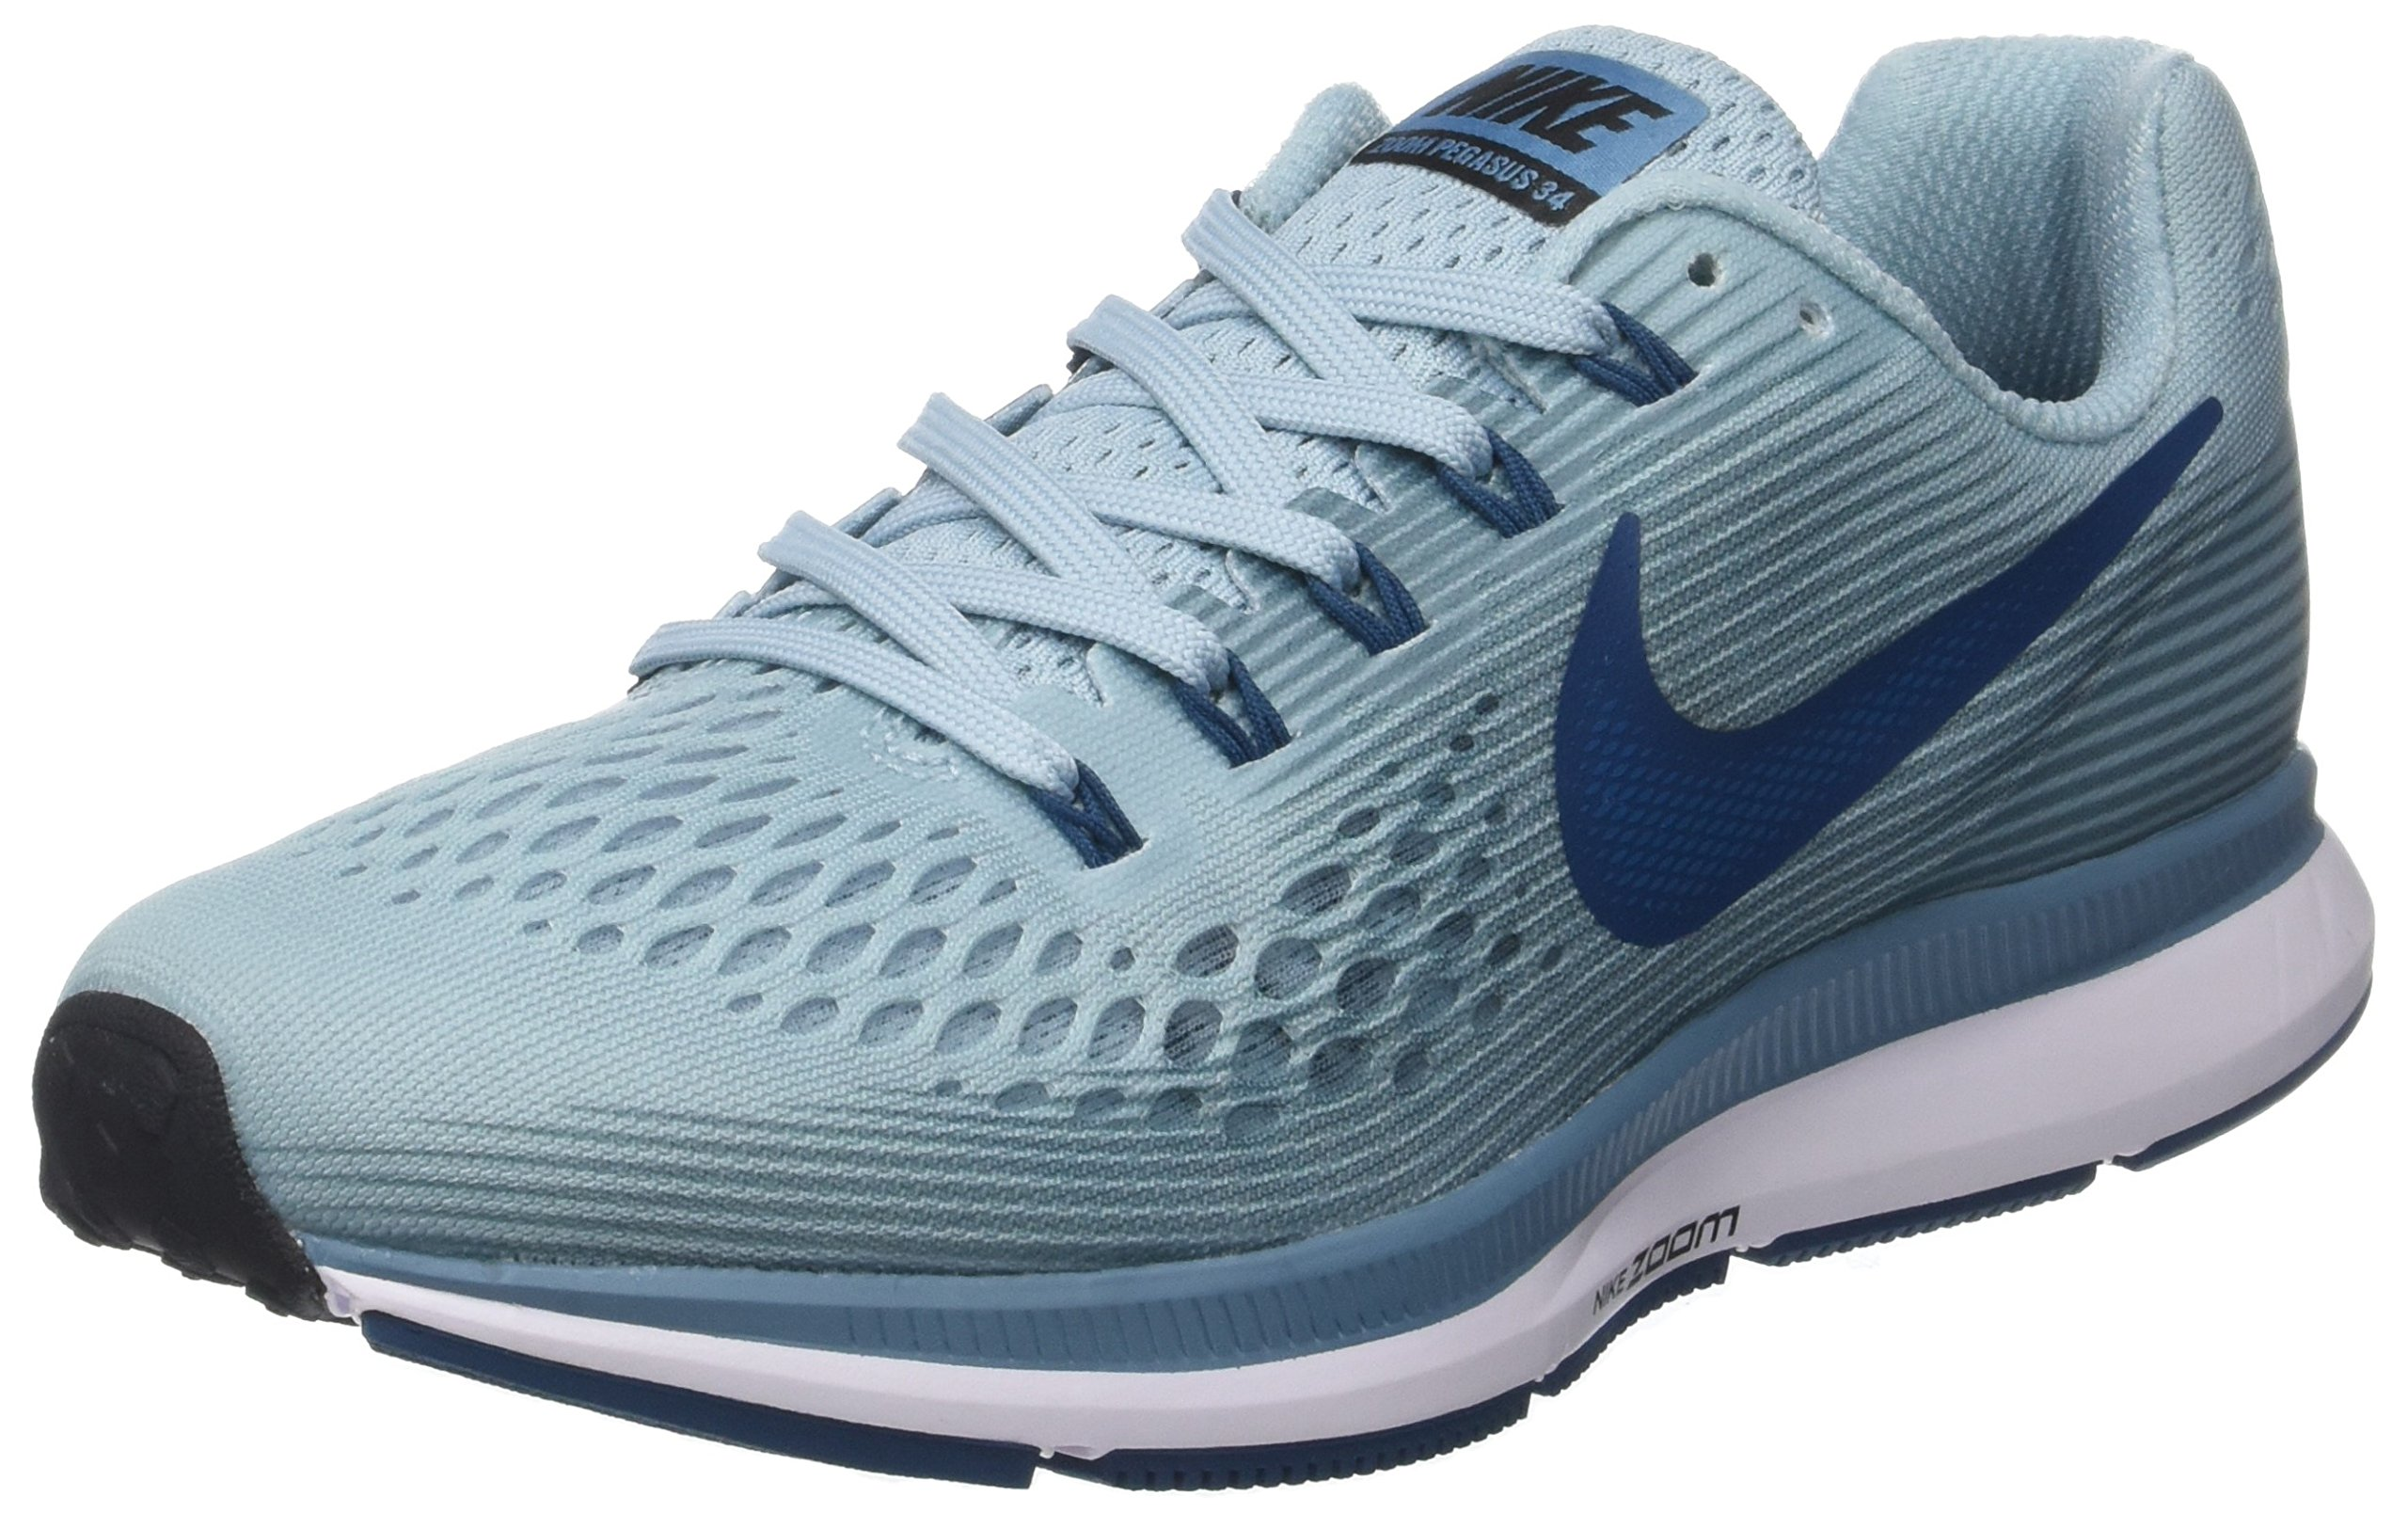 964a2d6bacd9c Nike Women's Air Zoom Pegasus 34 Running Shoes (Ocean Bliss/Blue Force, 7.5  M US)